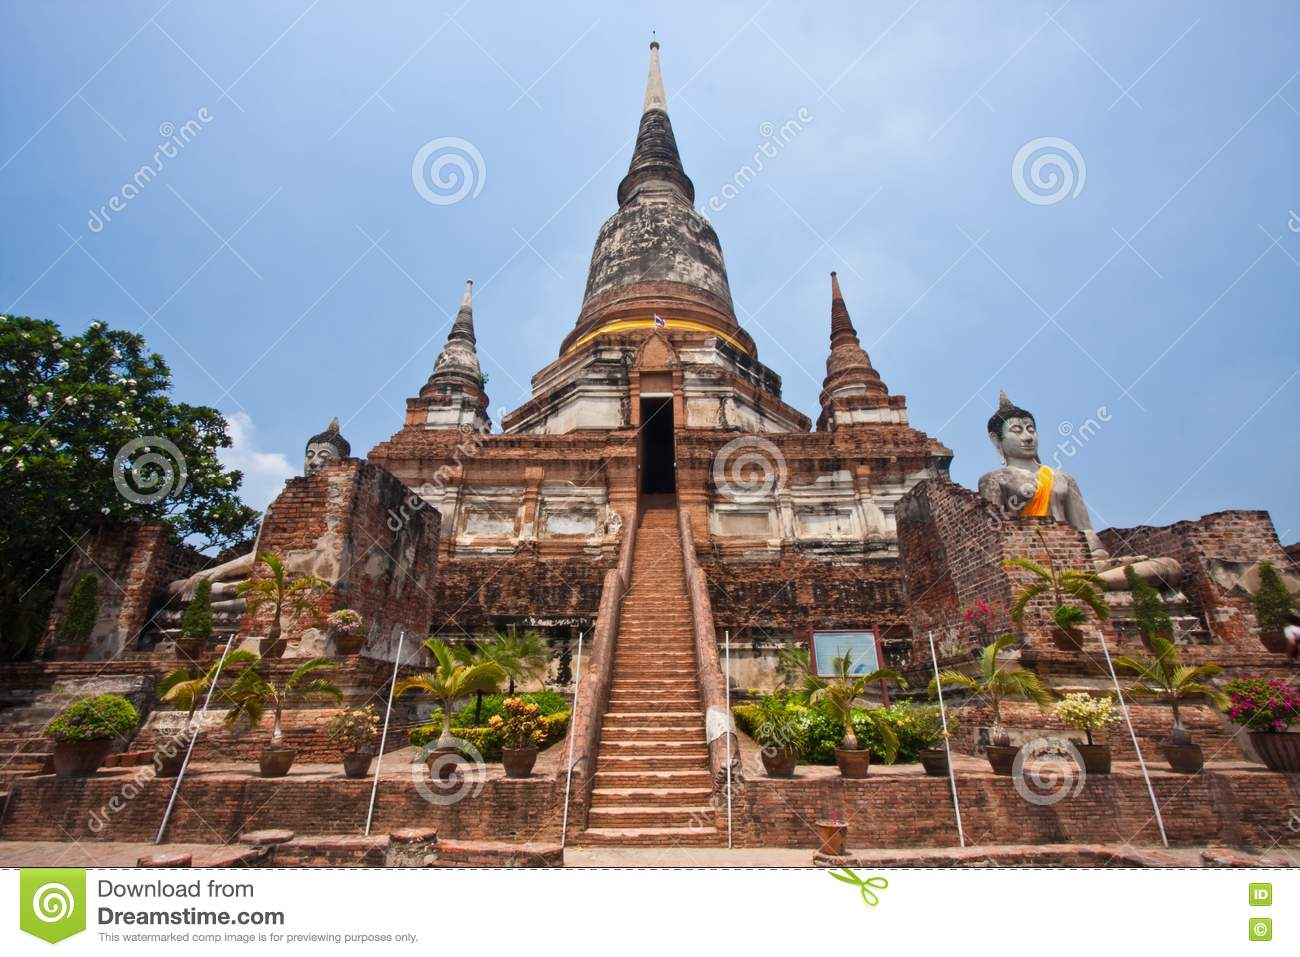 Wat Yai Chai Mongkol Stock Photo - Image: 14101540